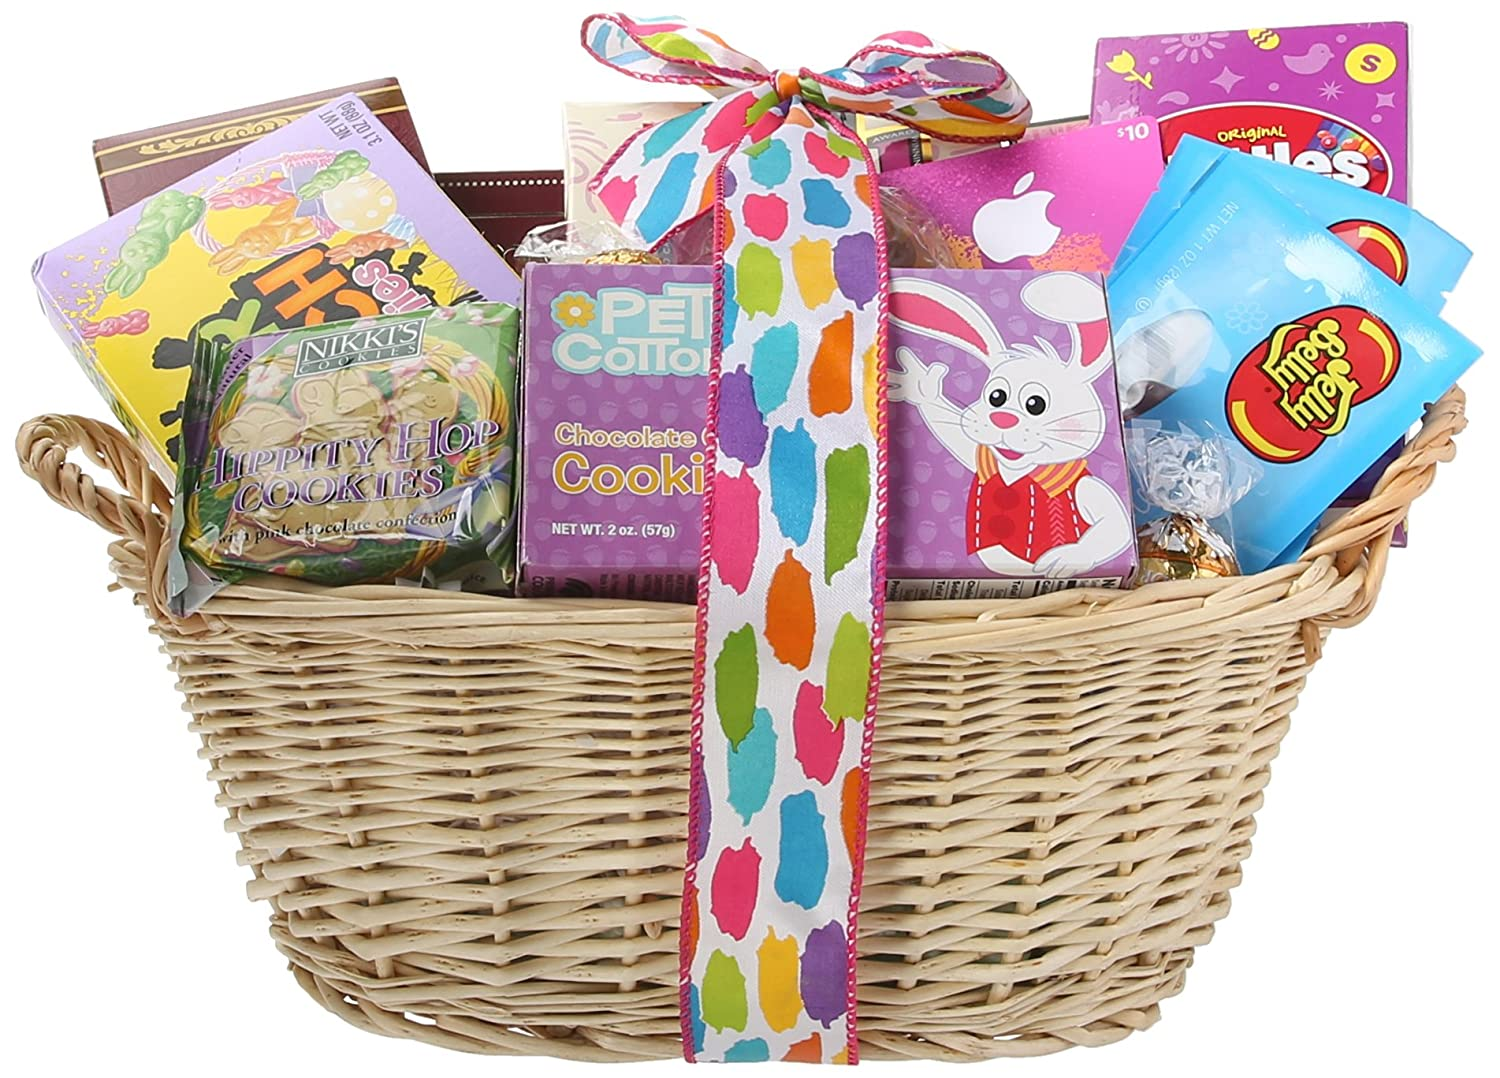 Amazon greatarrivals gift baskets itunes cool easter treats amazon greatarrivals gift baskets itunes cool easter treats teen and tween easter grocery gourmet food negle Gallery